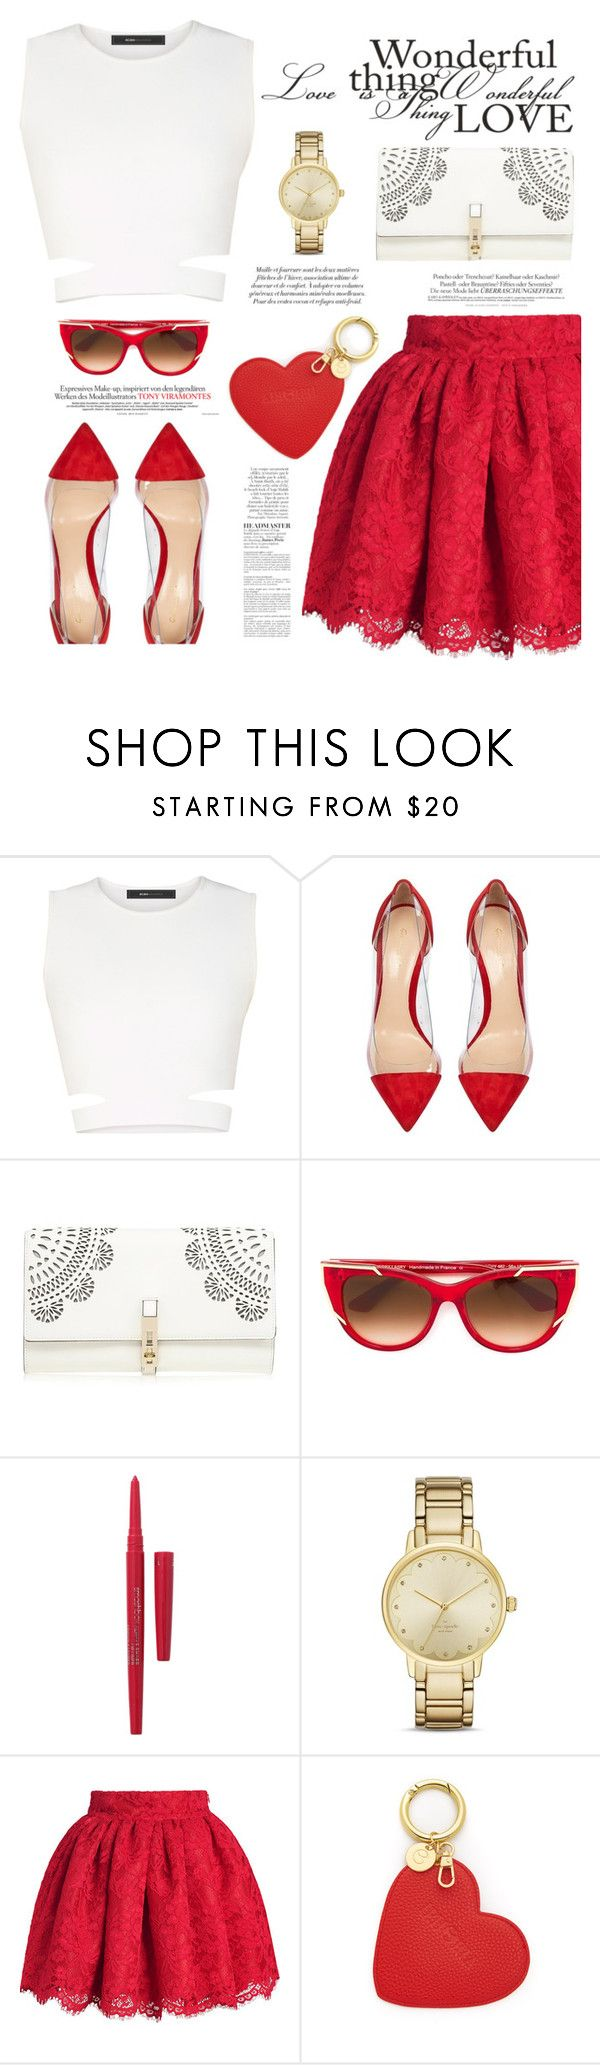 """♡ Pilsen liberation festival ♡"" by teryblueberry on Polyvore featuring BCBGMAXAZRIA, Gianvito Rossi, Lipsy, Thierry Lasry, Smashbox, Melissa, Kate Spade, Iphoria and Anja"